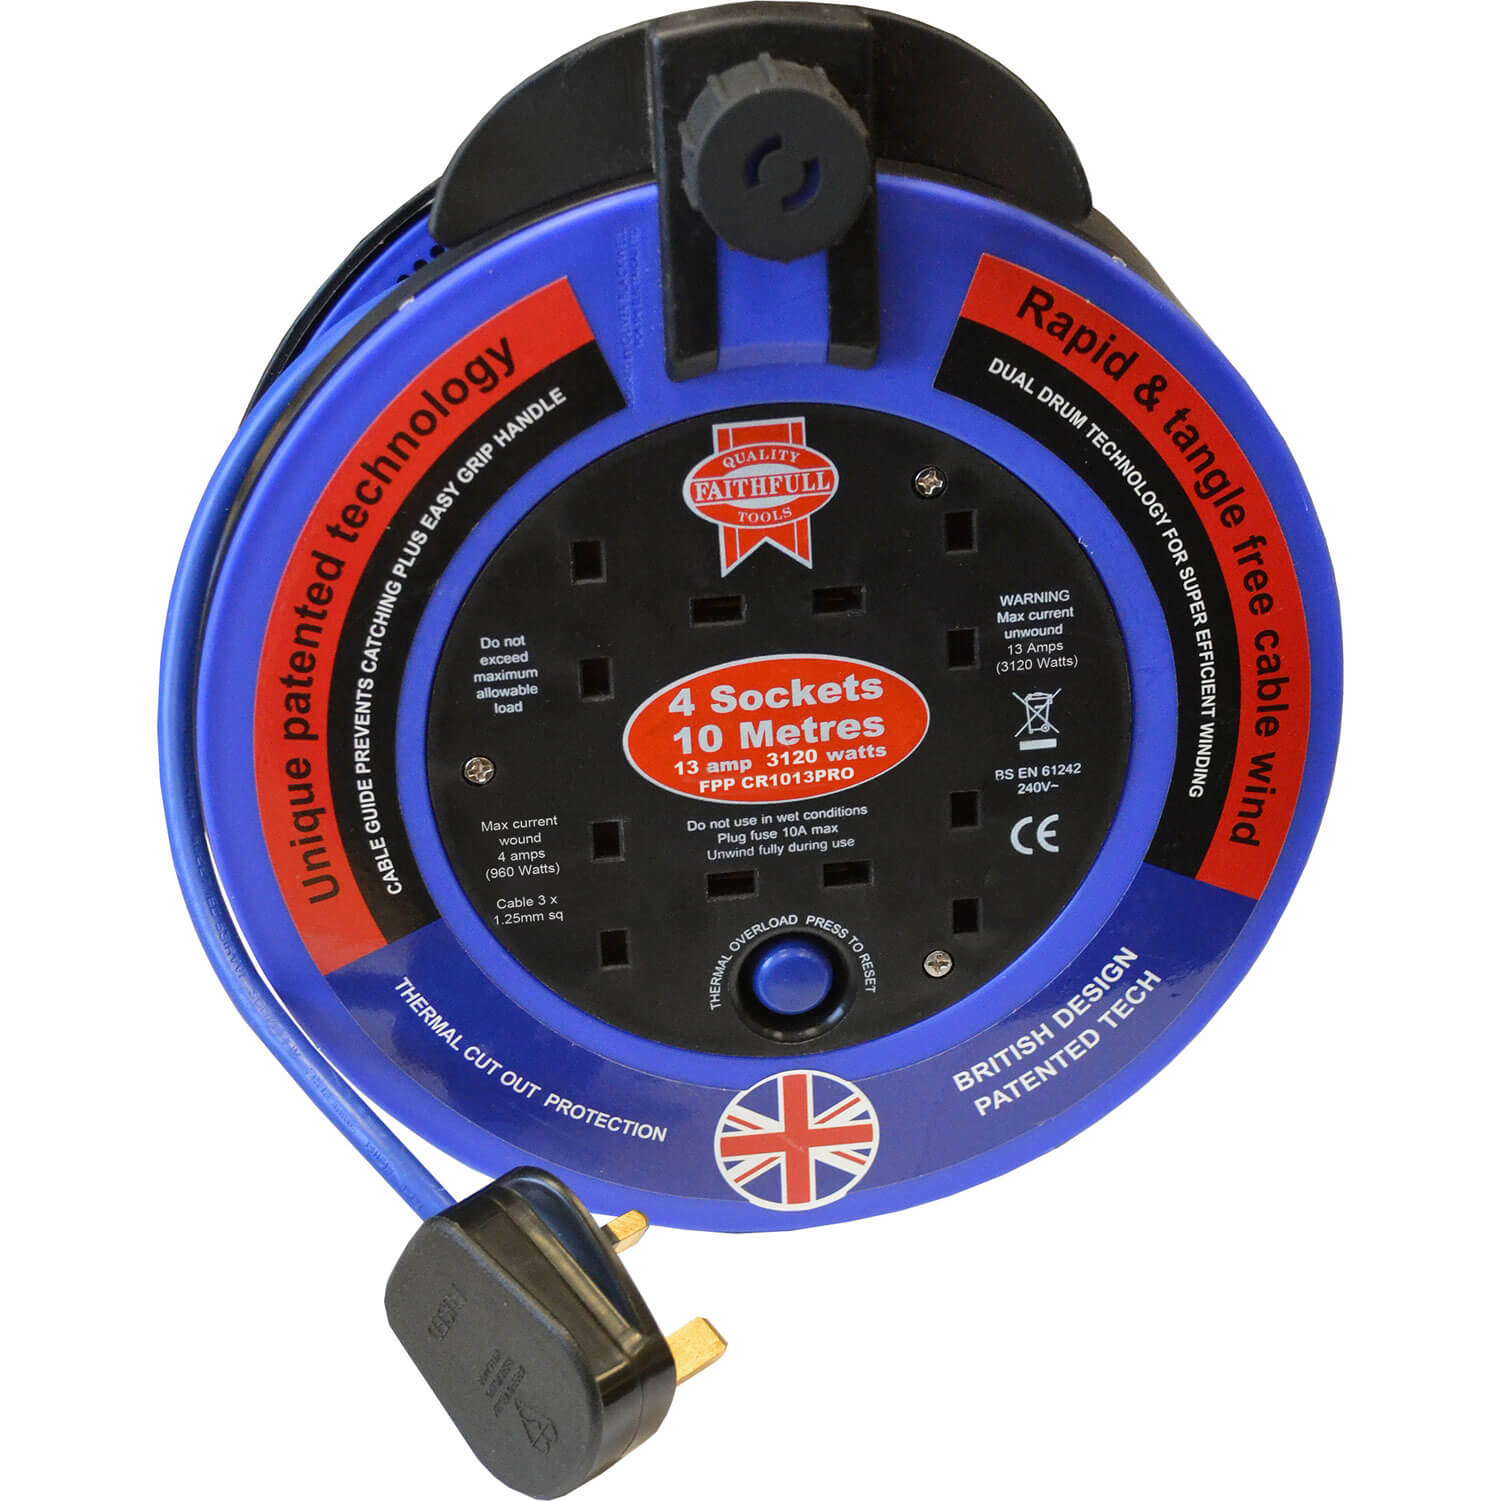 Faithfull Power Plus Fast Rewind 4 Socket Cable Reel 10m 13amp 240v